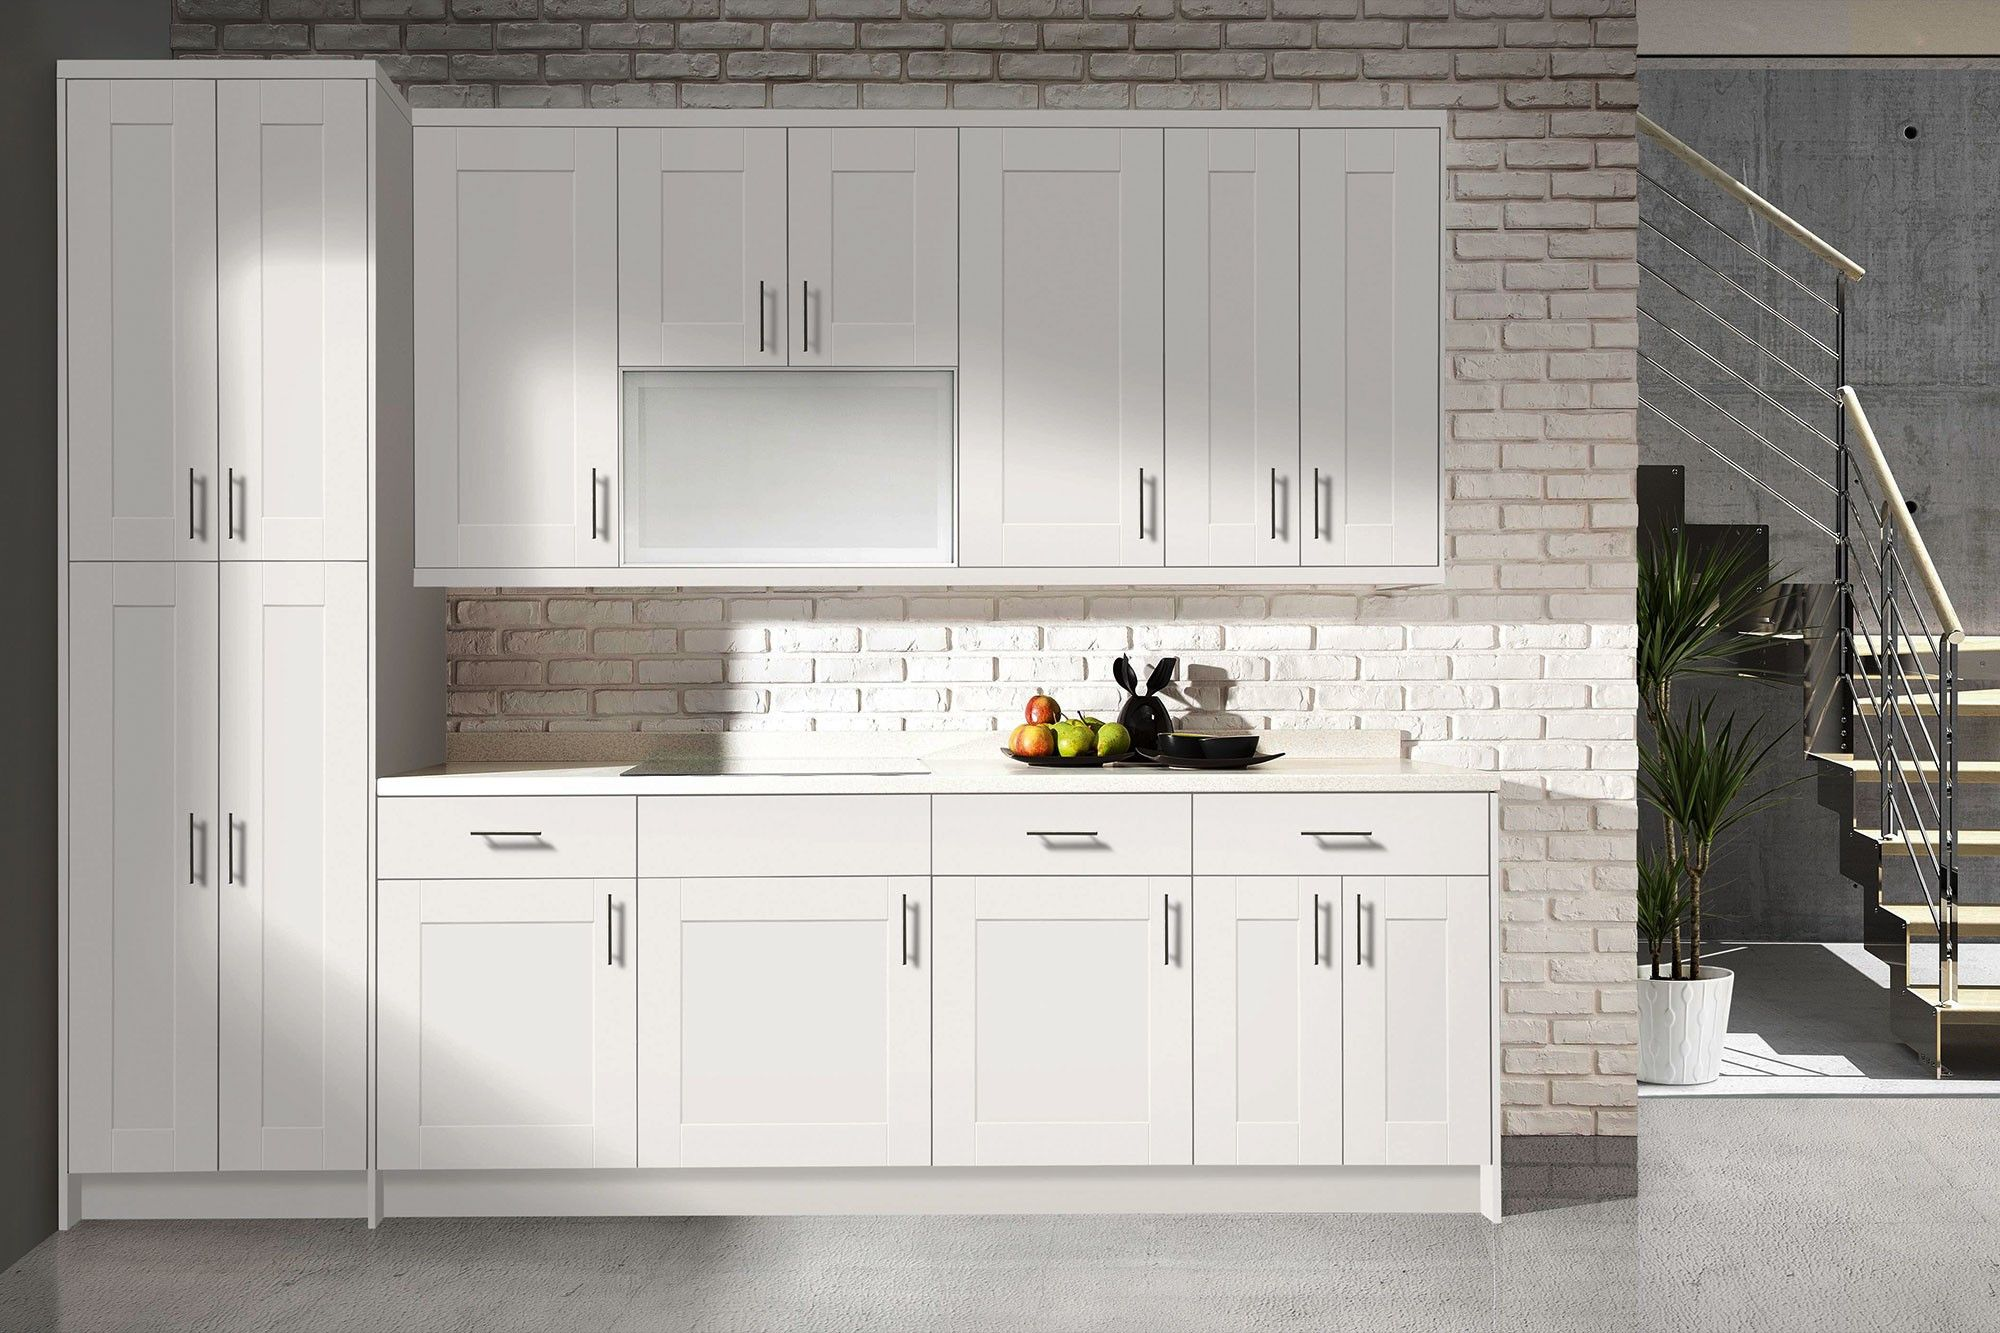 Wholesale Shaker Style White Kitchen Cabinet Door Buy Kitchen Cabinet Door Shaker Style Curved Kitchen Cabinet Doors White Melamine Kitchen Cabinet Door Product On Alibaba Com